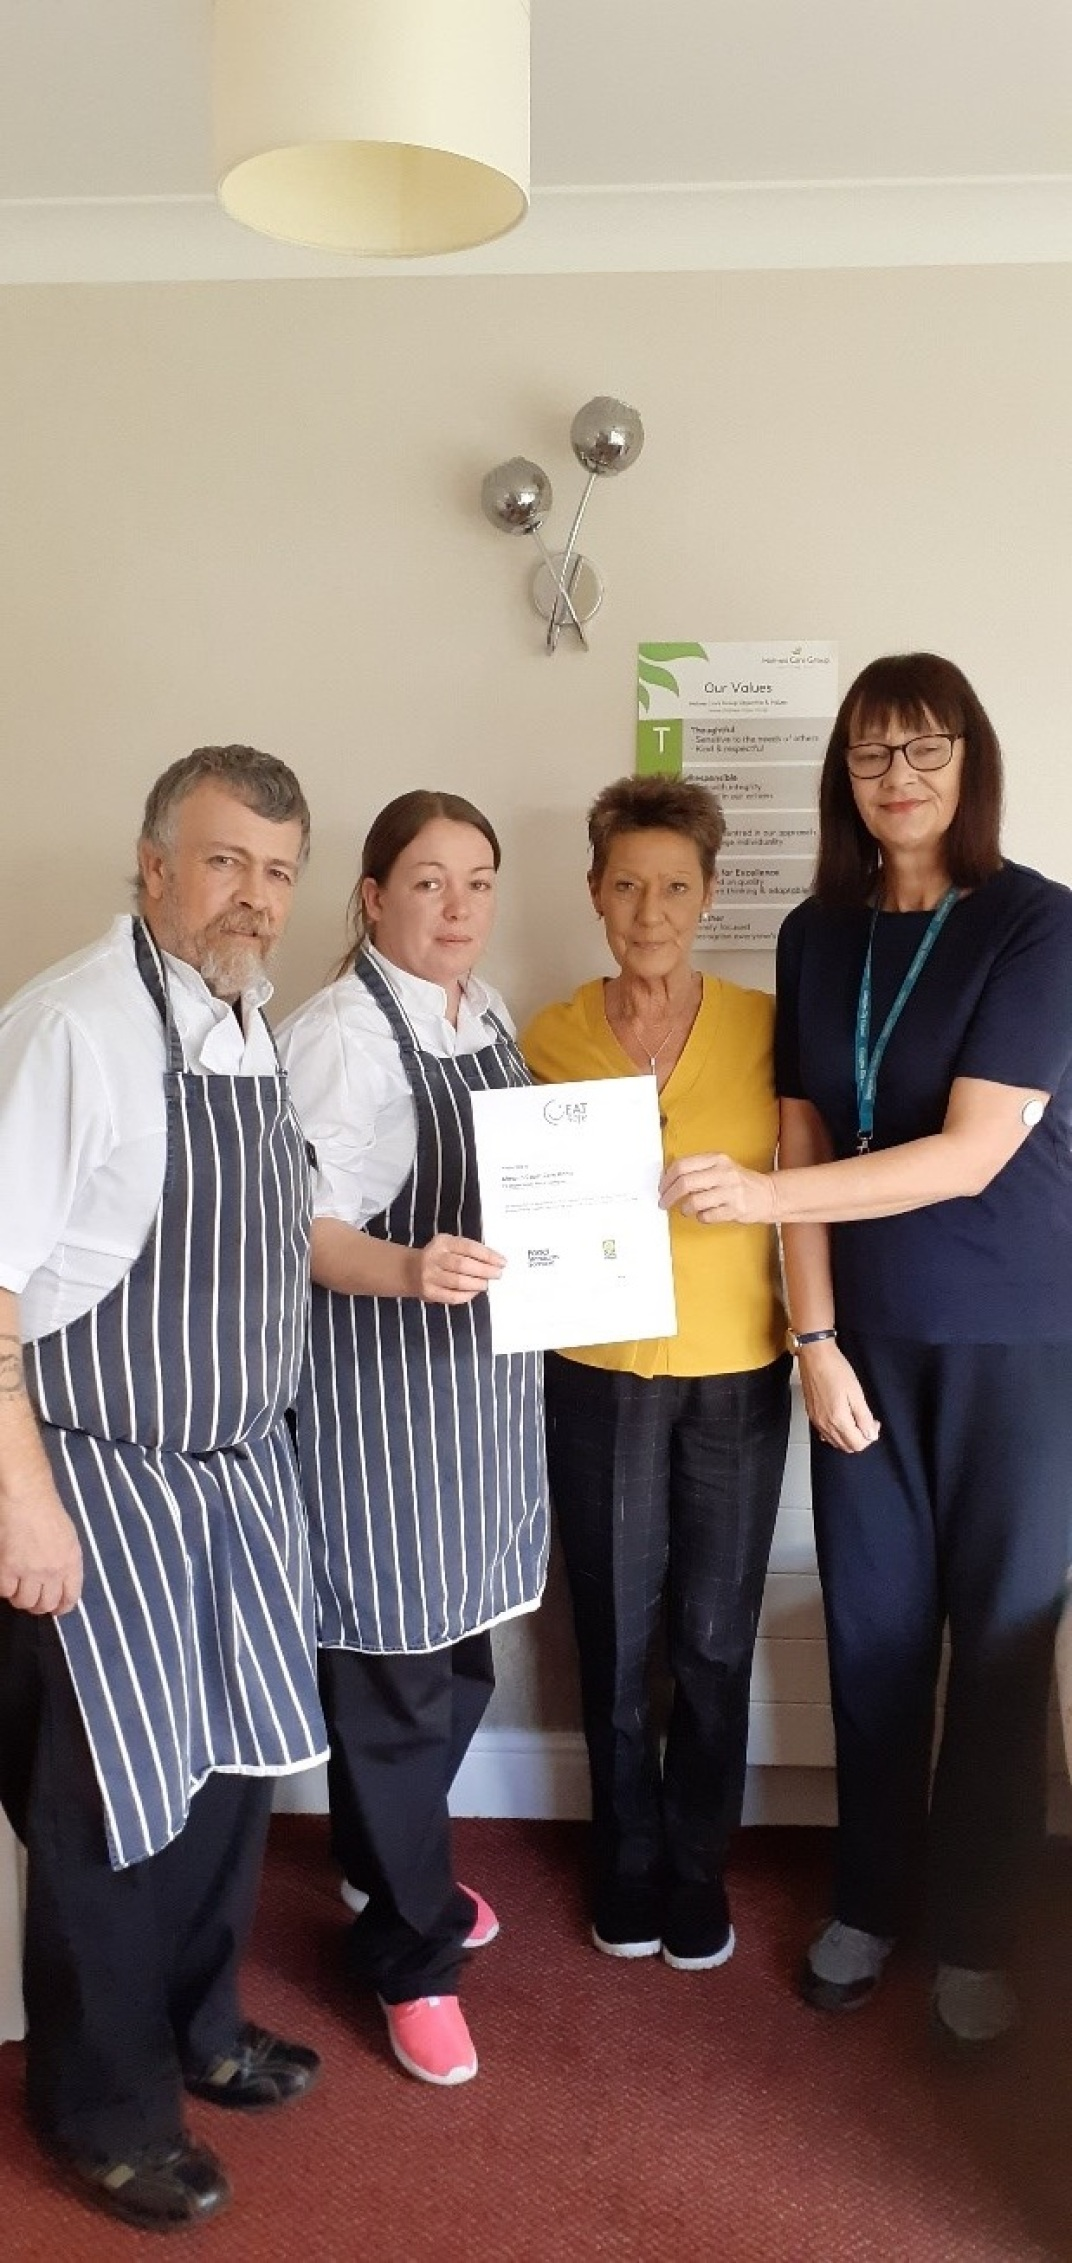 Almond Court staff presented with their award.